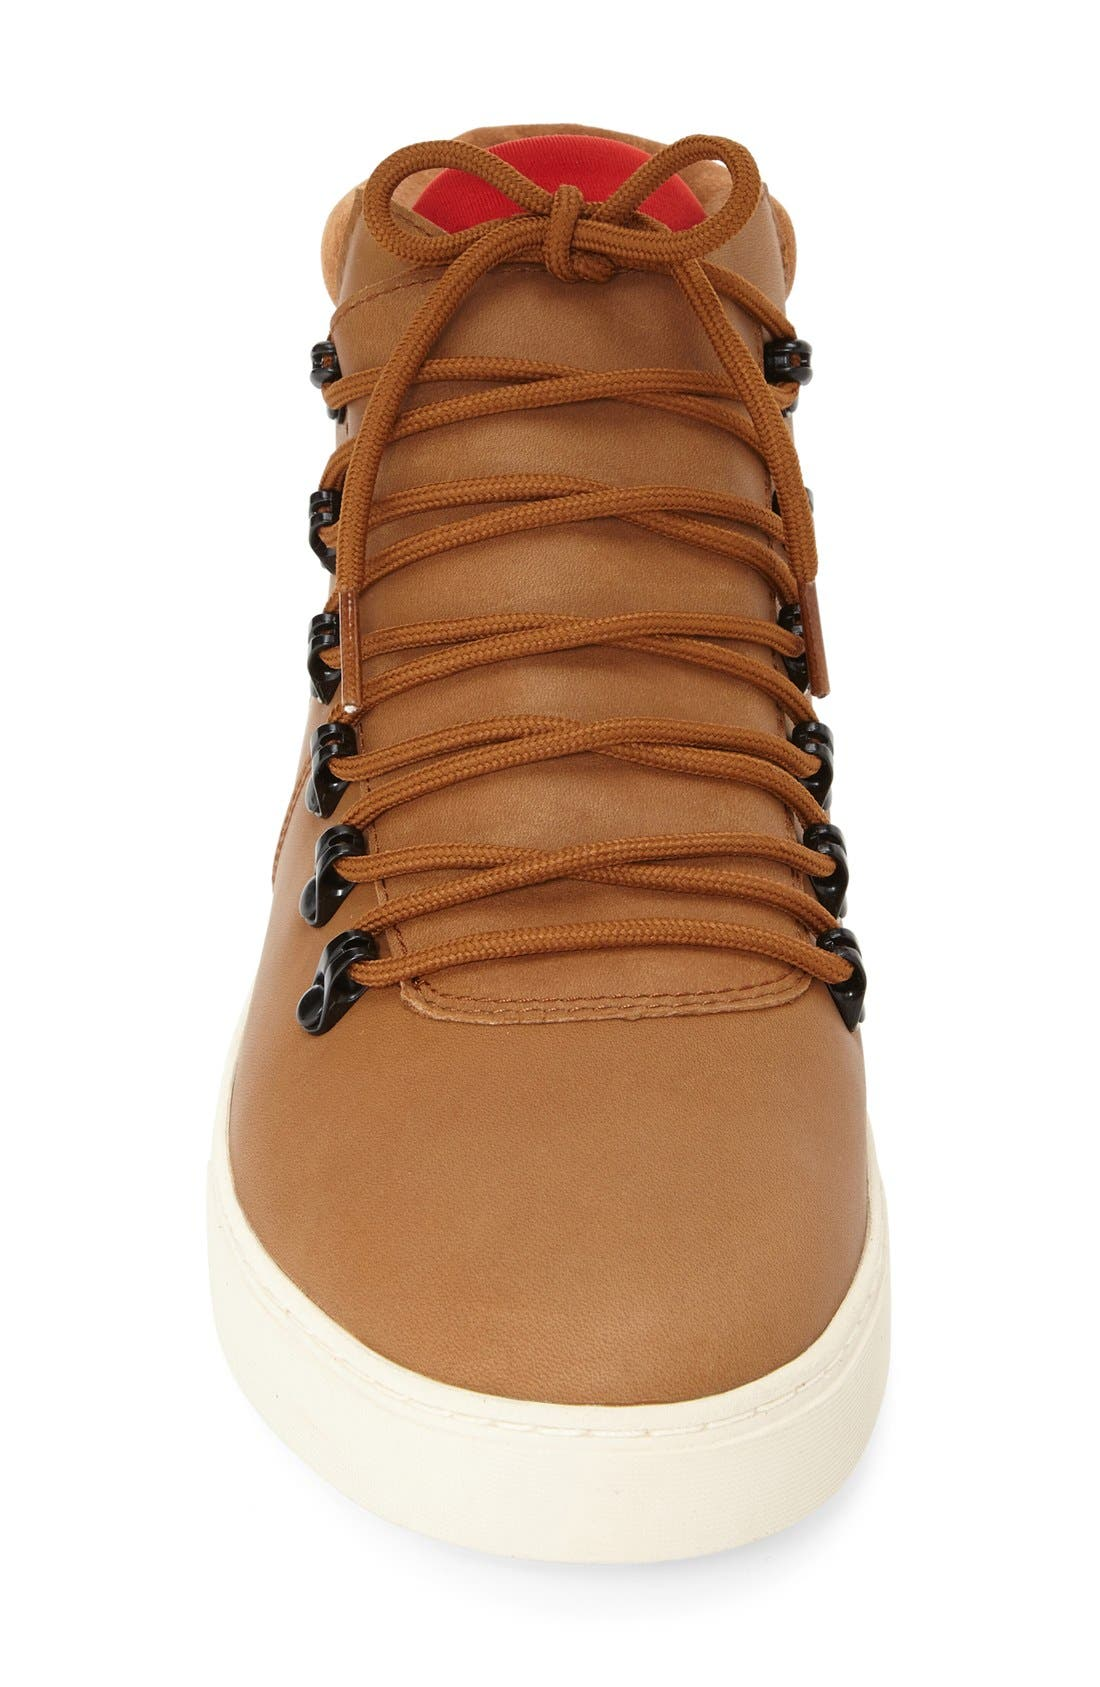 'Grant' Sneaker Boot,                             Alternate thumbnail 3, color,                             234